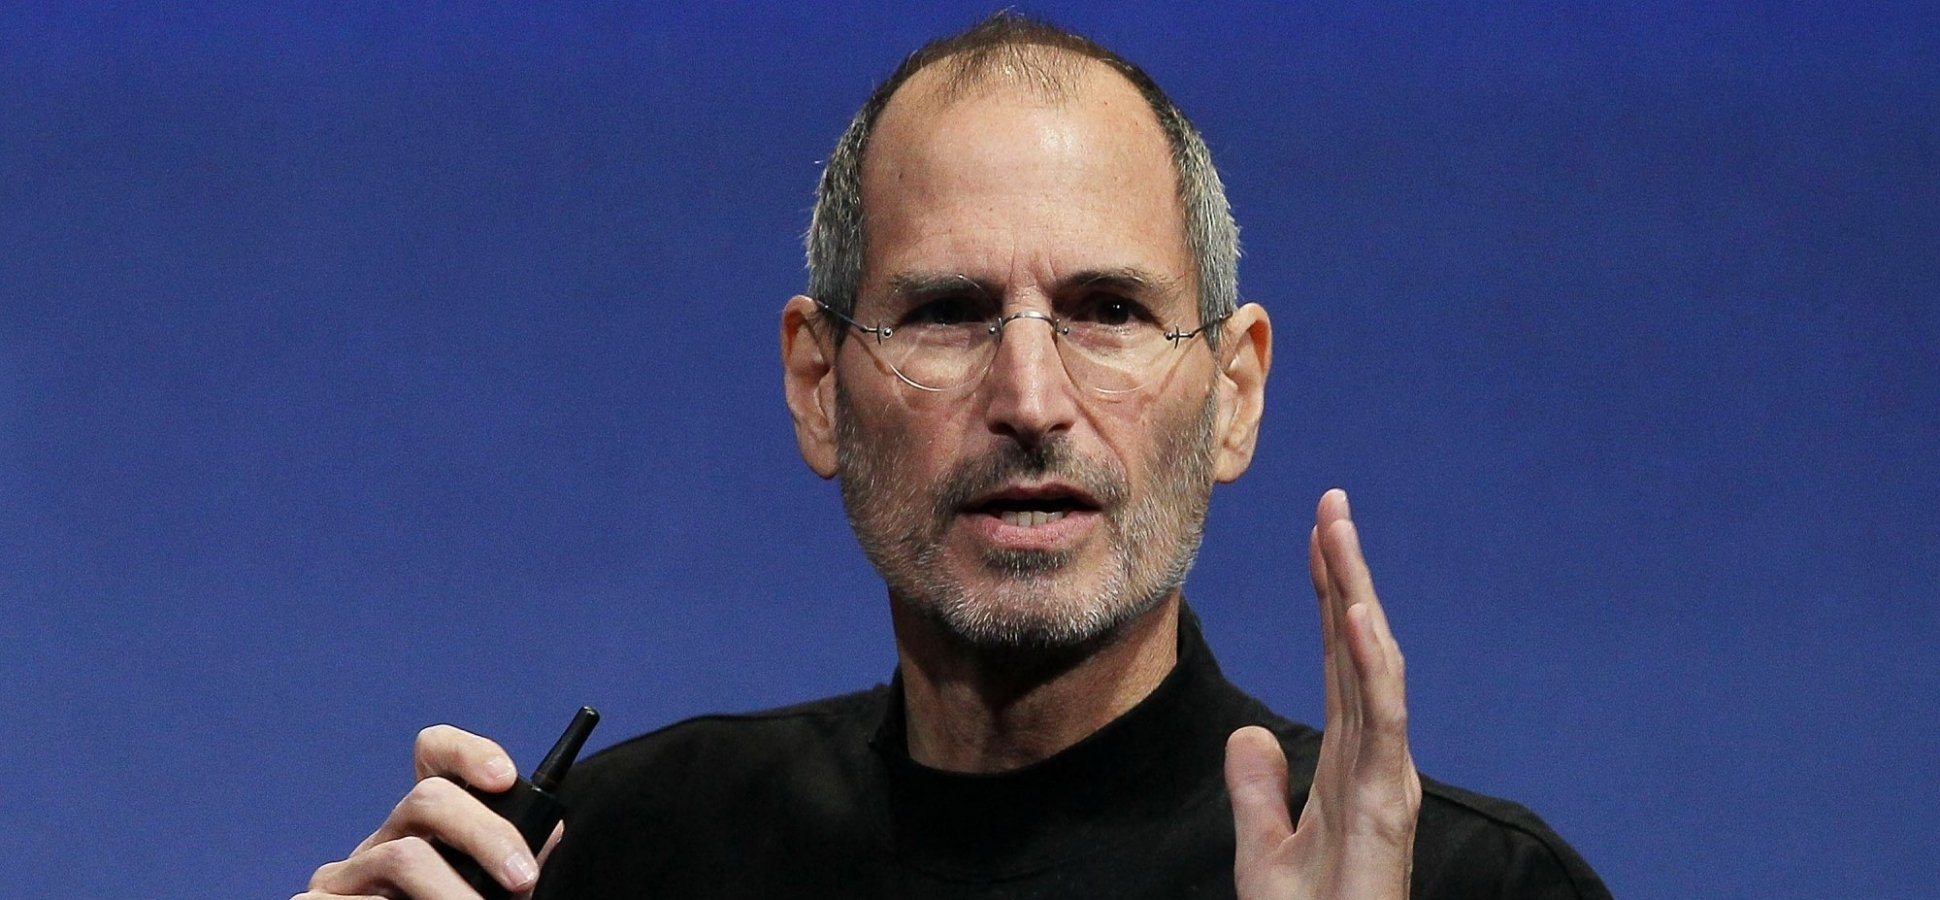 Steve Jobs Figured Out Branding 40 Years Ago. Why Are We Still Reinventing It?